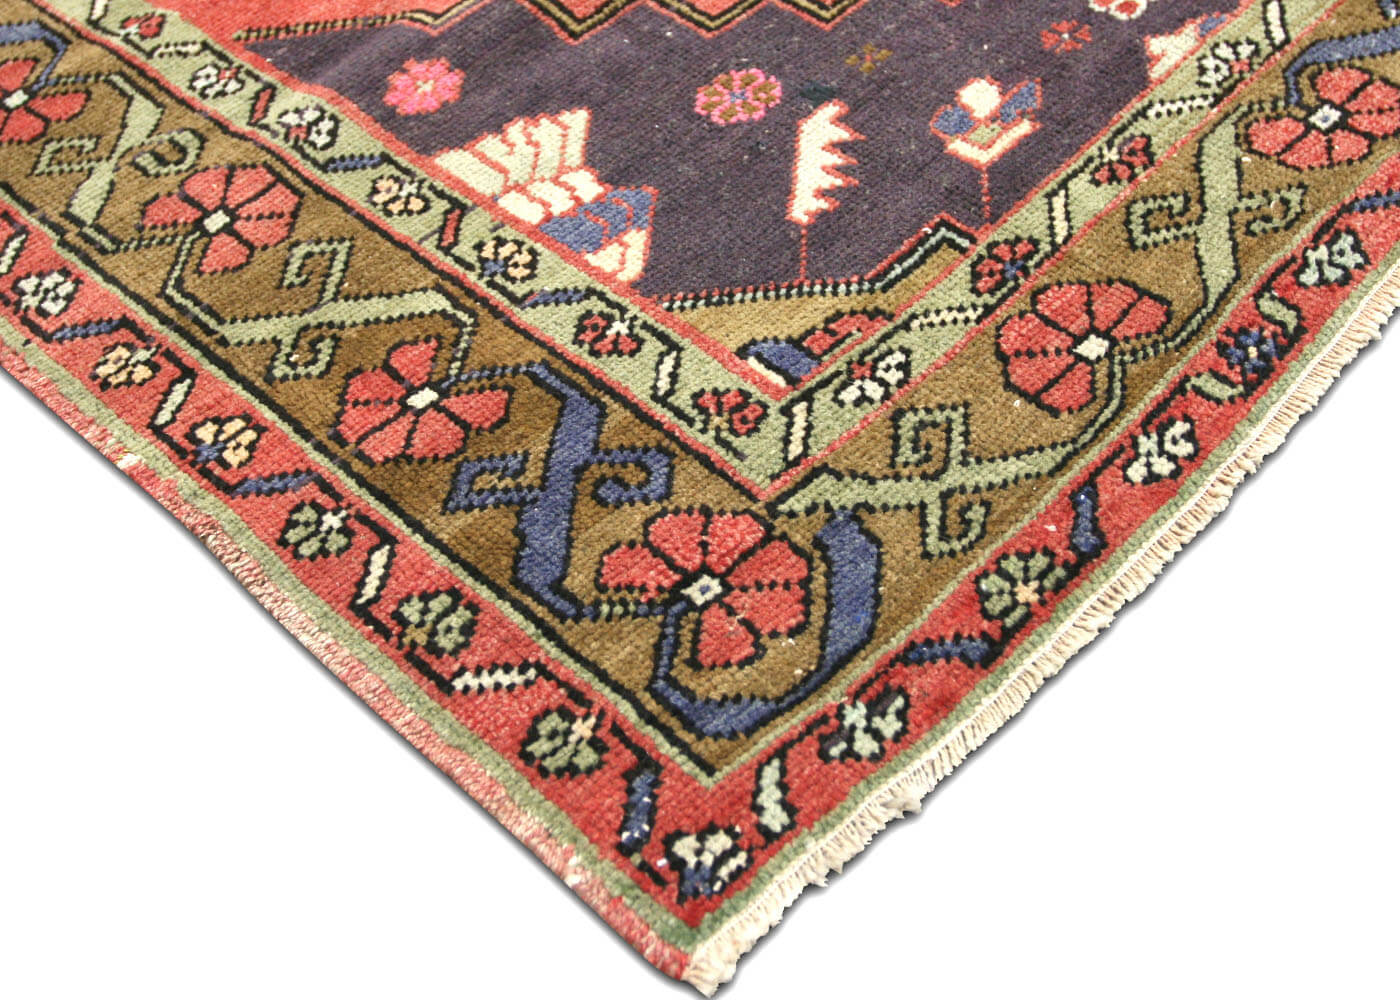 Vintage Turkish Oushak Carpet - 5' x 11'1""